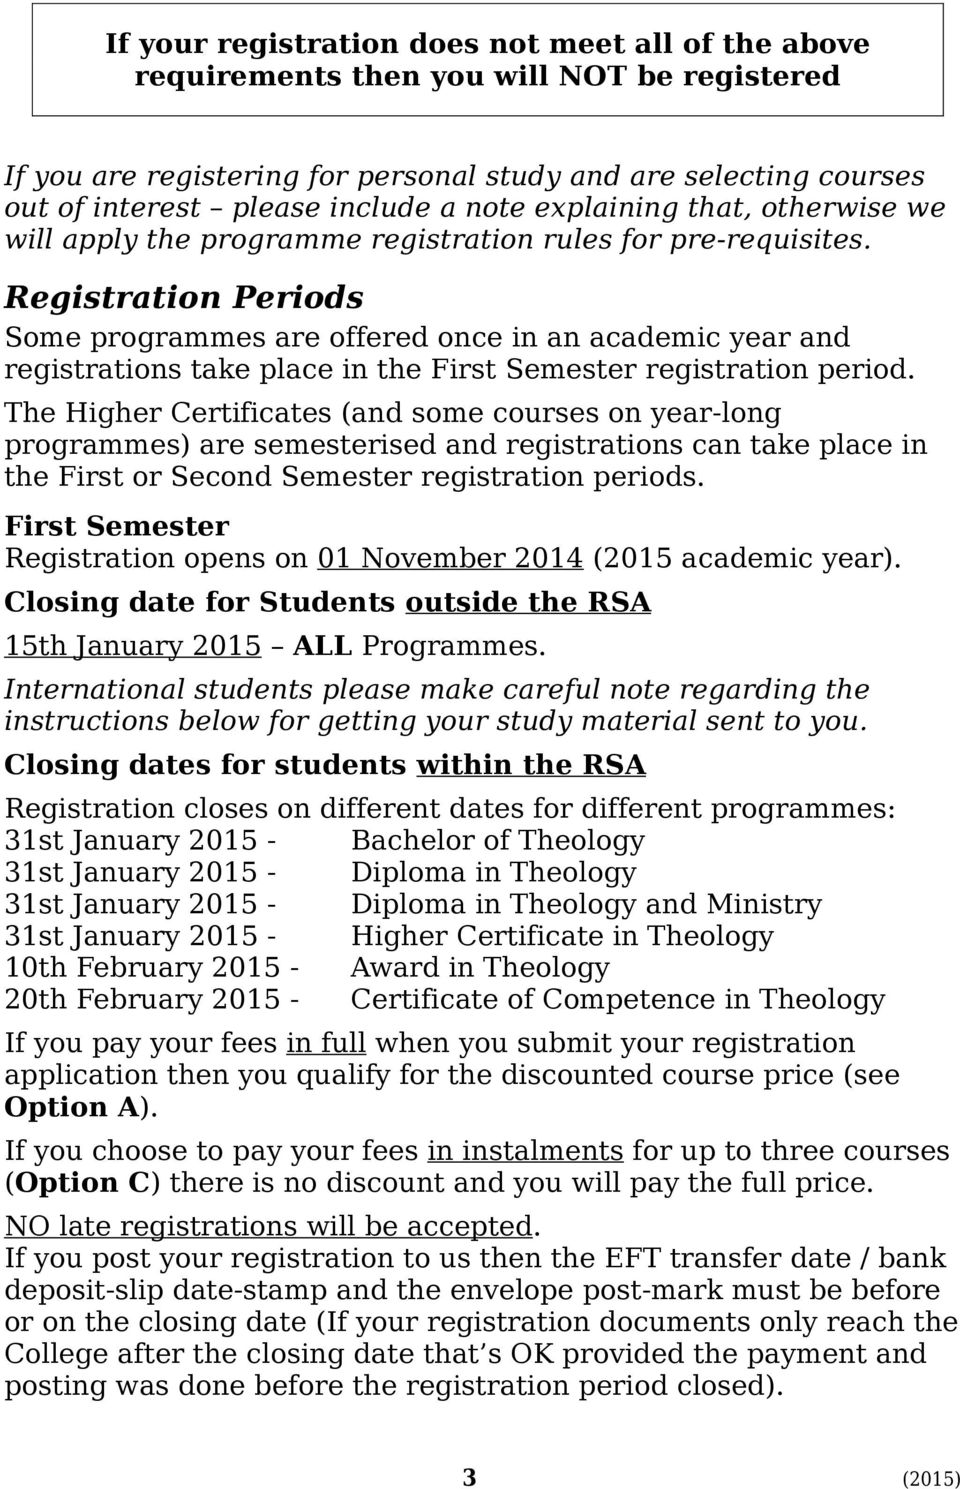 Registration Periods Some programmes are offered once in an academic year and registrations take place in the First Semester registration period.